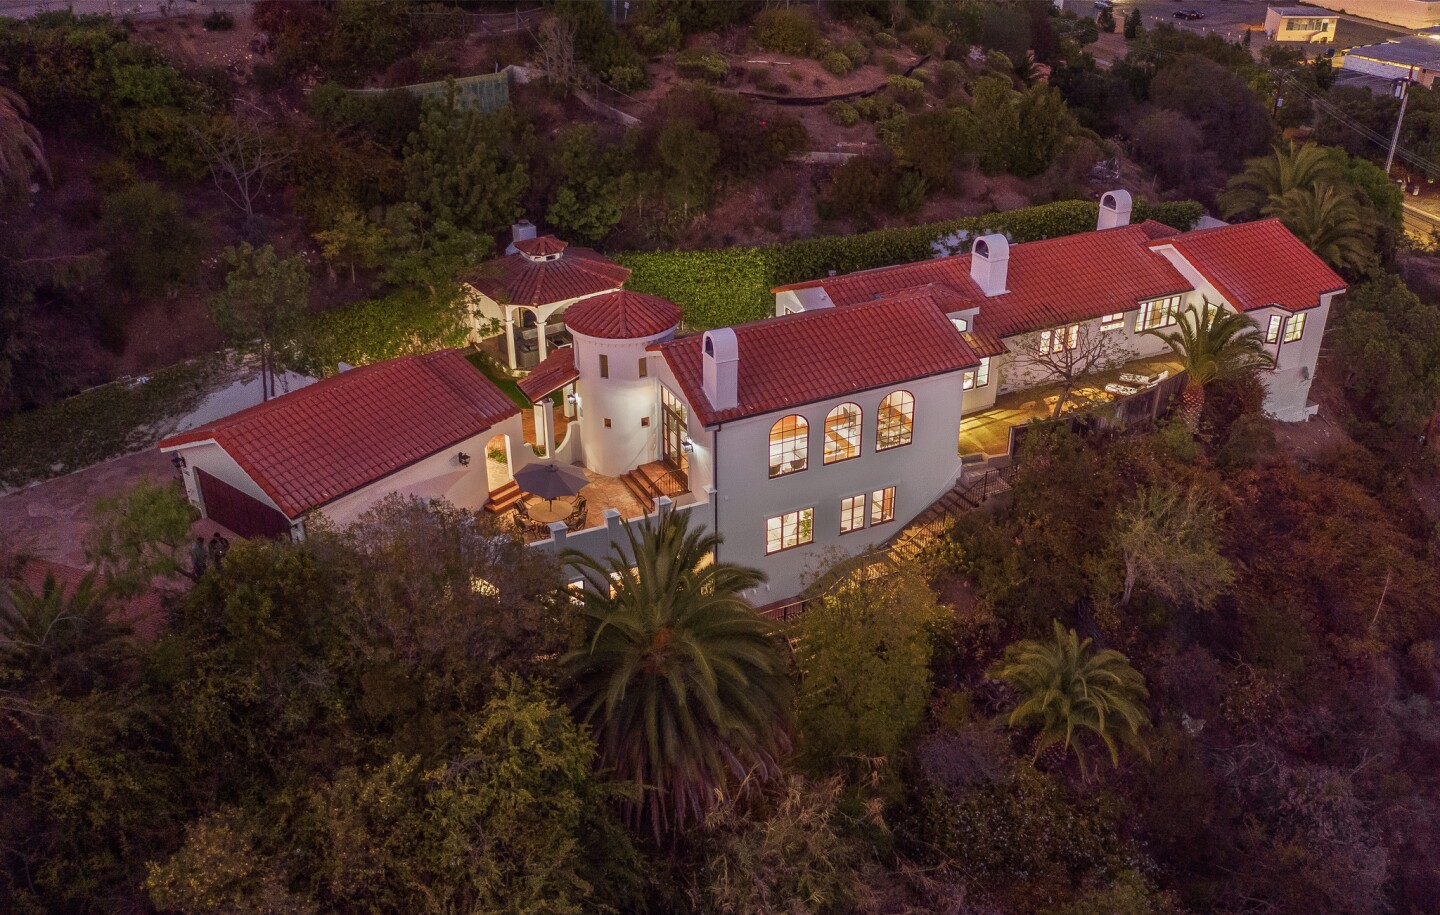 Spanish home in the Palisades